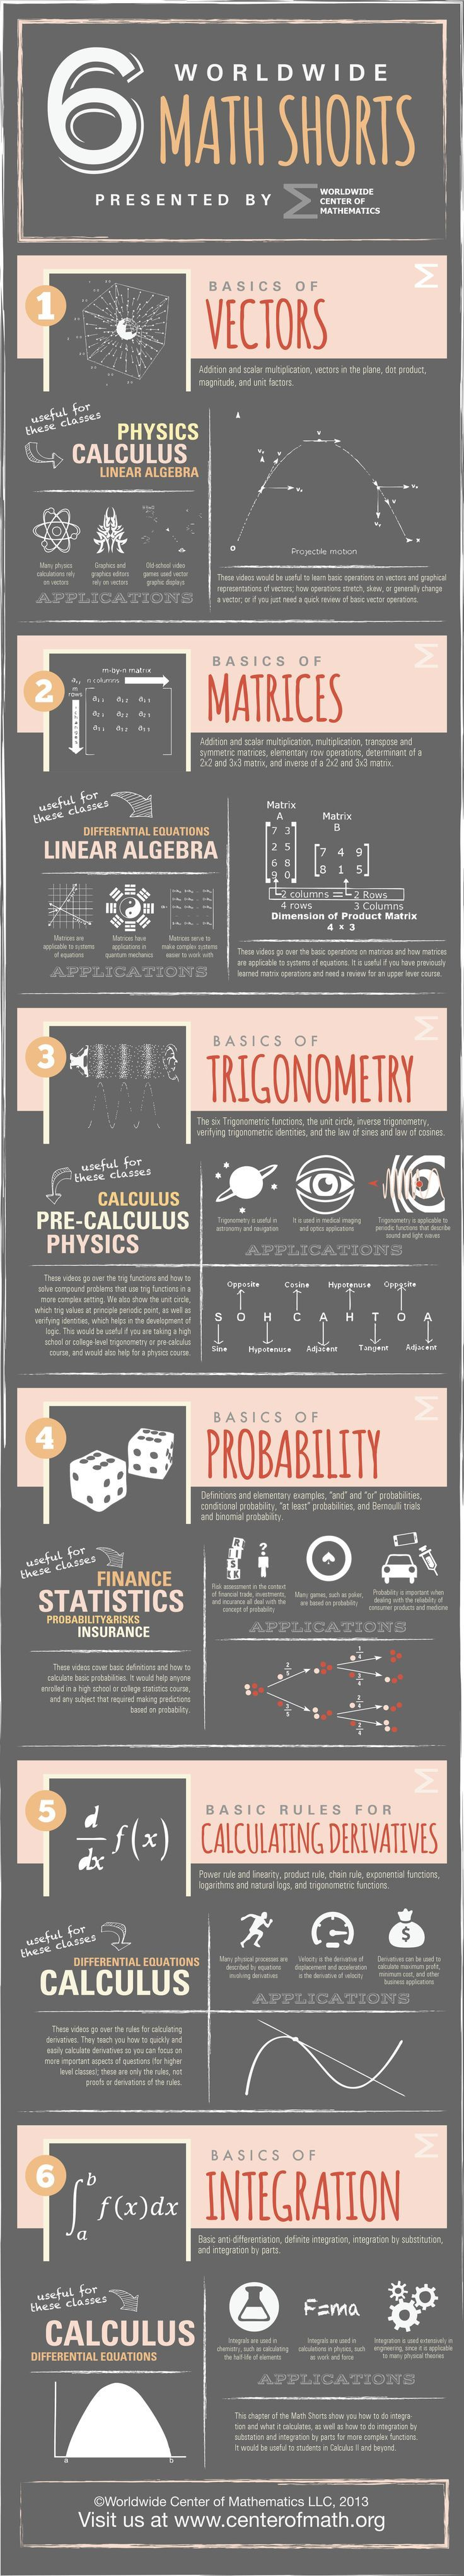 18 Best Physics Images On Pinterest Knowledge And New Schematic Software For Engineersquick Easy Circuits All Videos Math Resources Described Beautifully In This Awesome Infographic